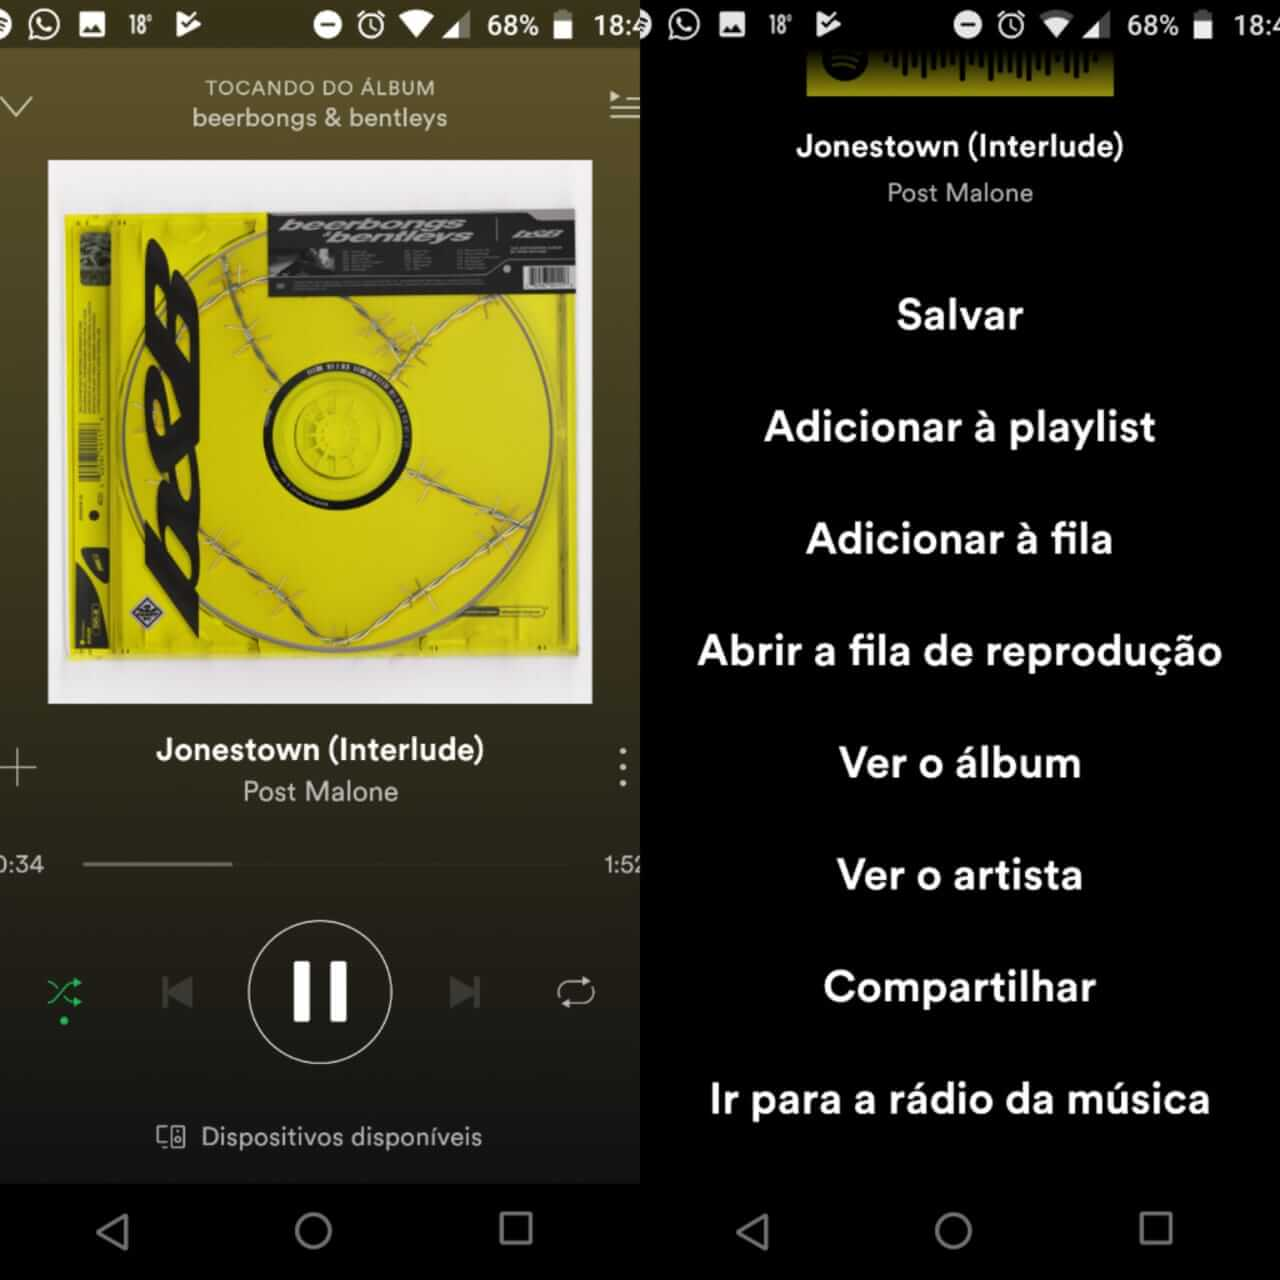 WhatsApp Image 2018 05 21 at 19.01.12 - Como compartilhar músicas do Spotify no Instagram